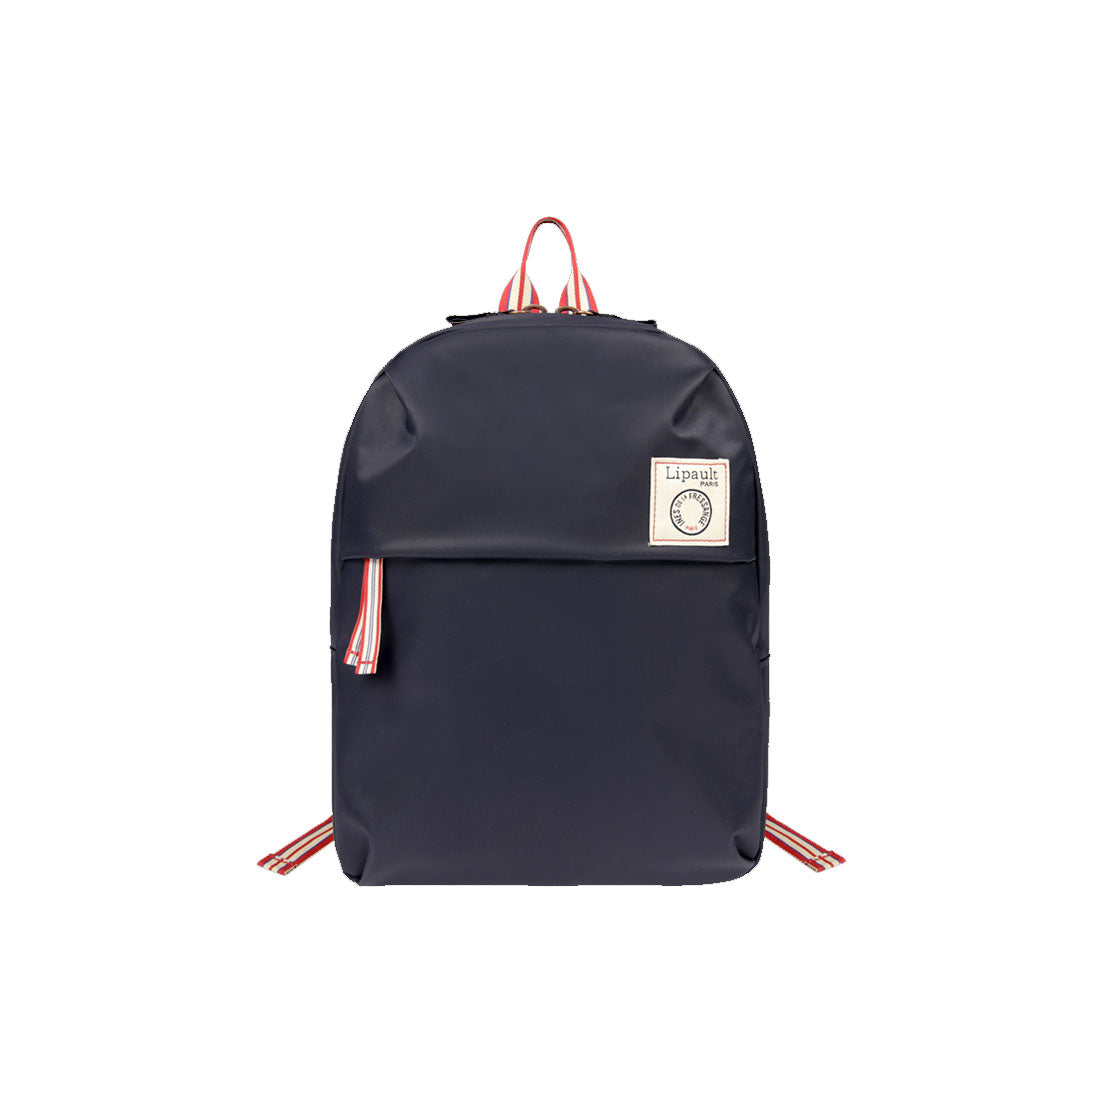 Lipault IDLF Capsule Collection Backpack Extra Small